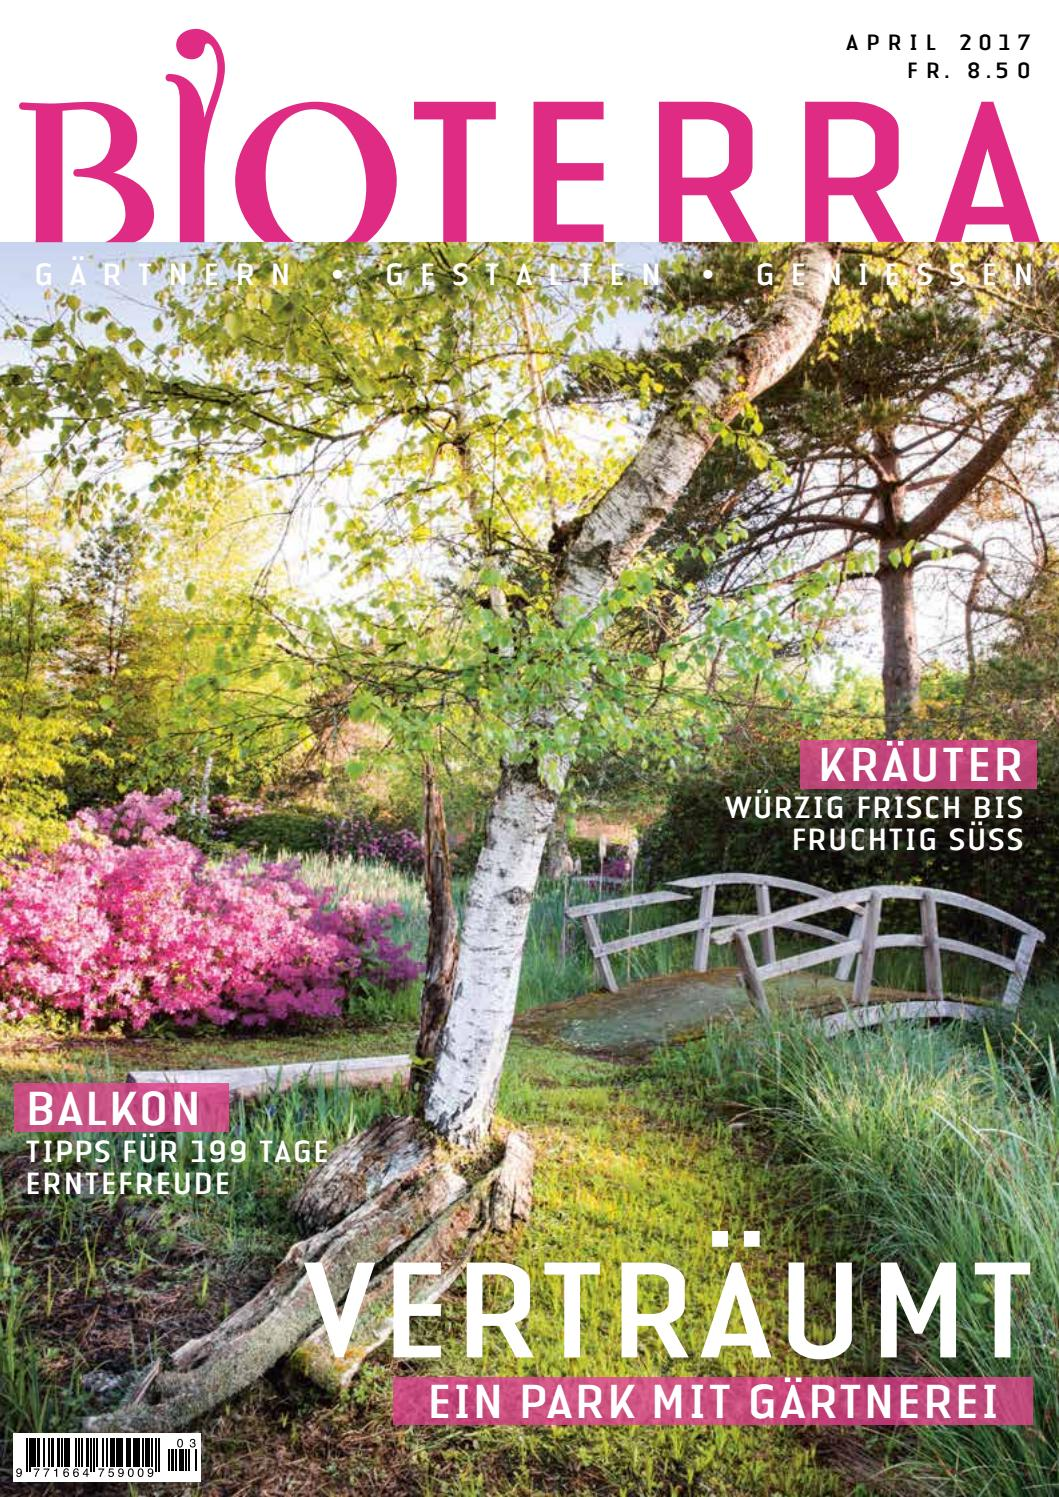 Gartenecken Gestalten Bioterra April 2017 By Bioterra Ch Issuu